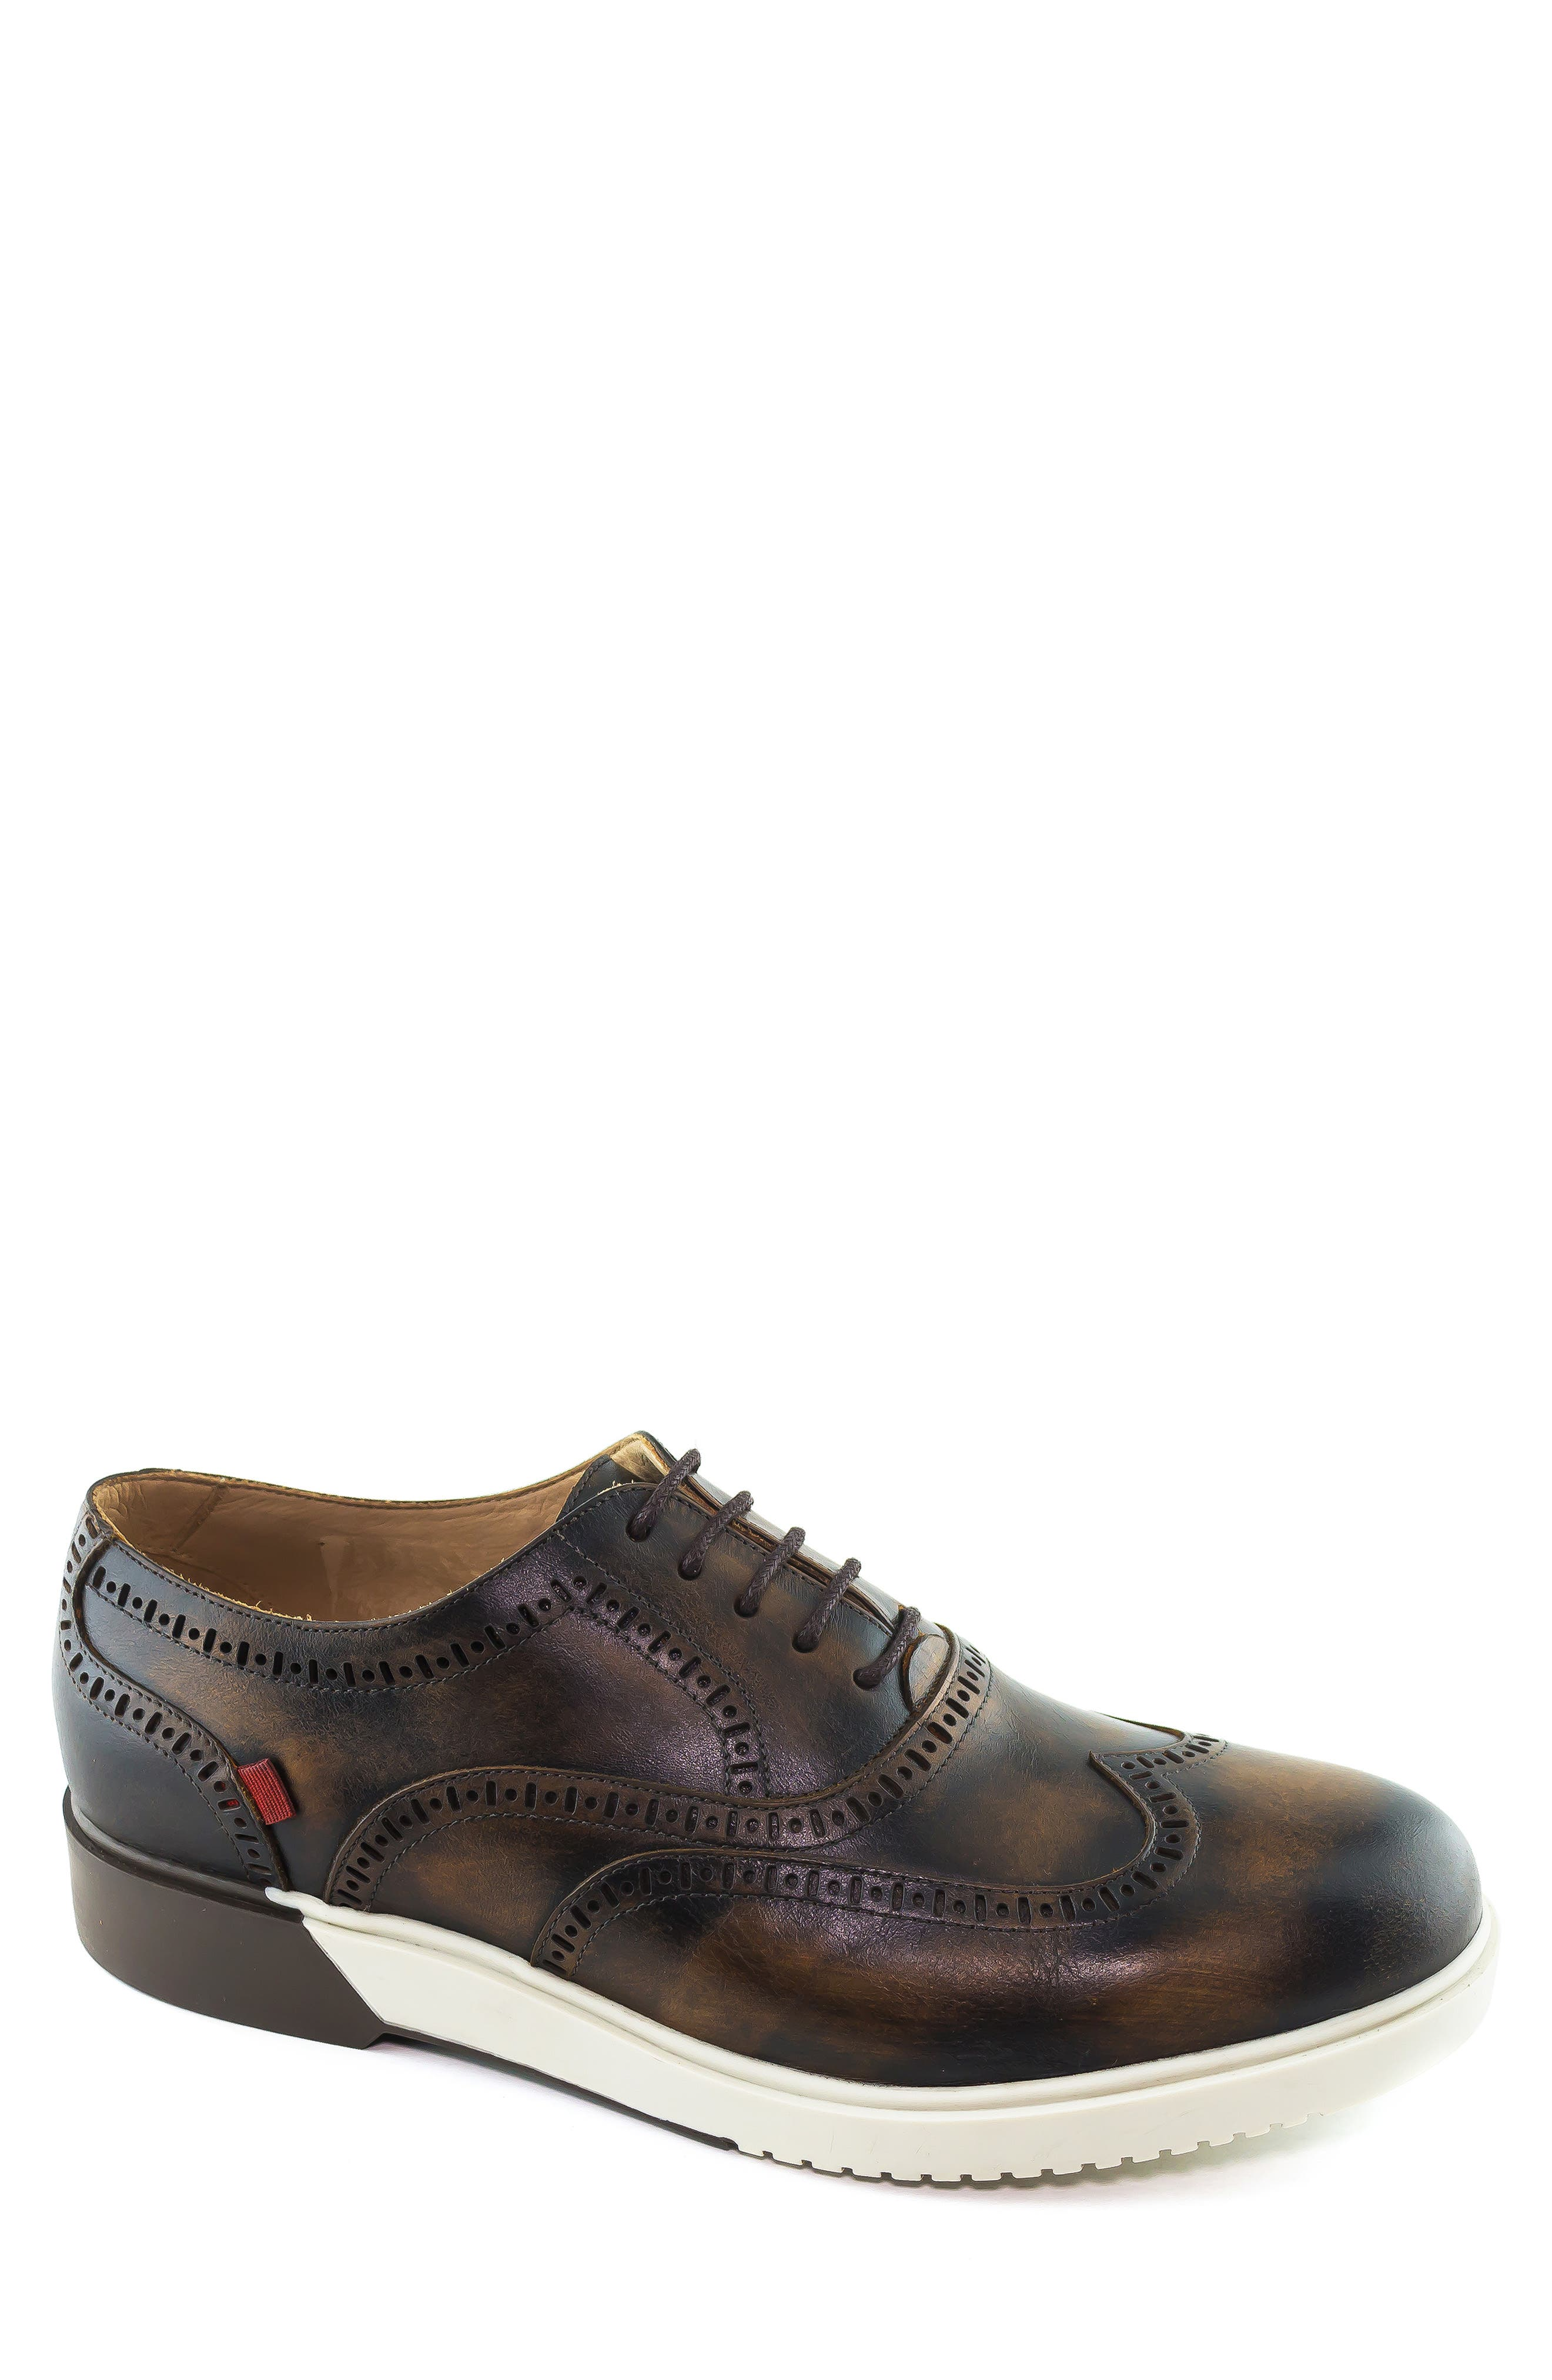 5th Ave Wingtip Sneaker,                             Main thumbnail 4, color,